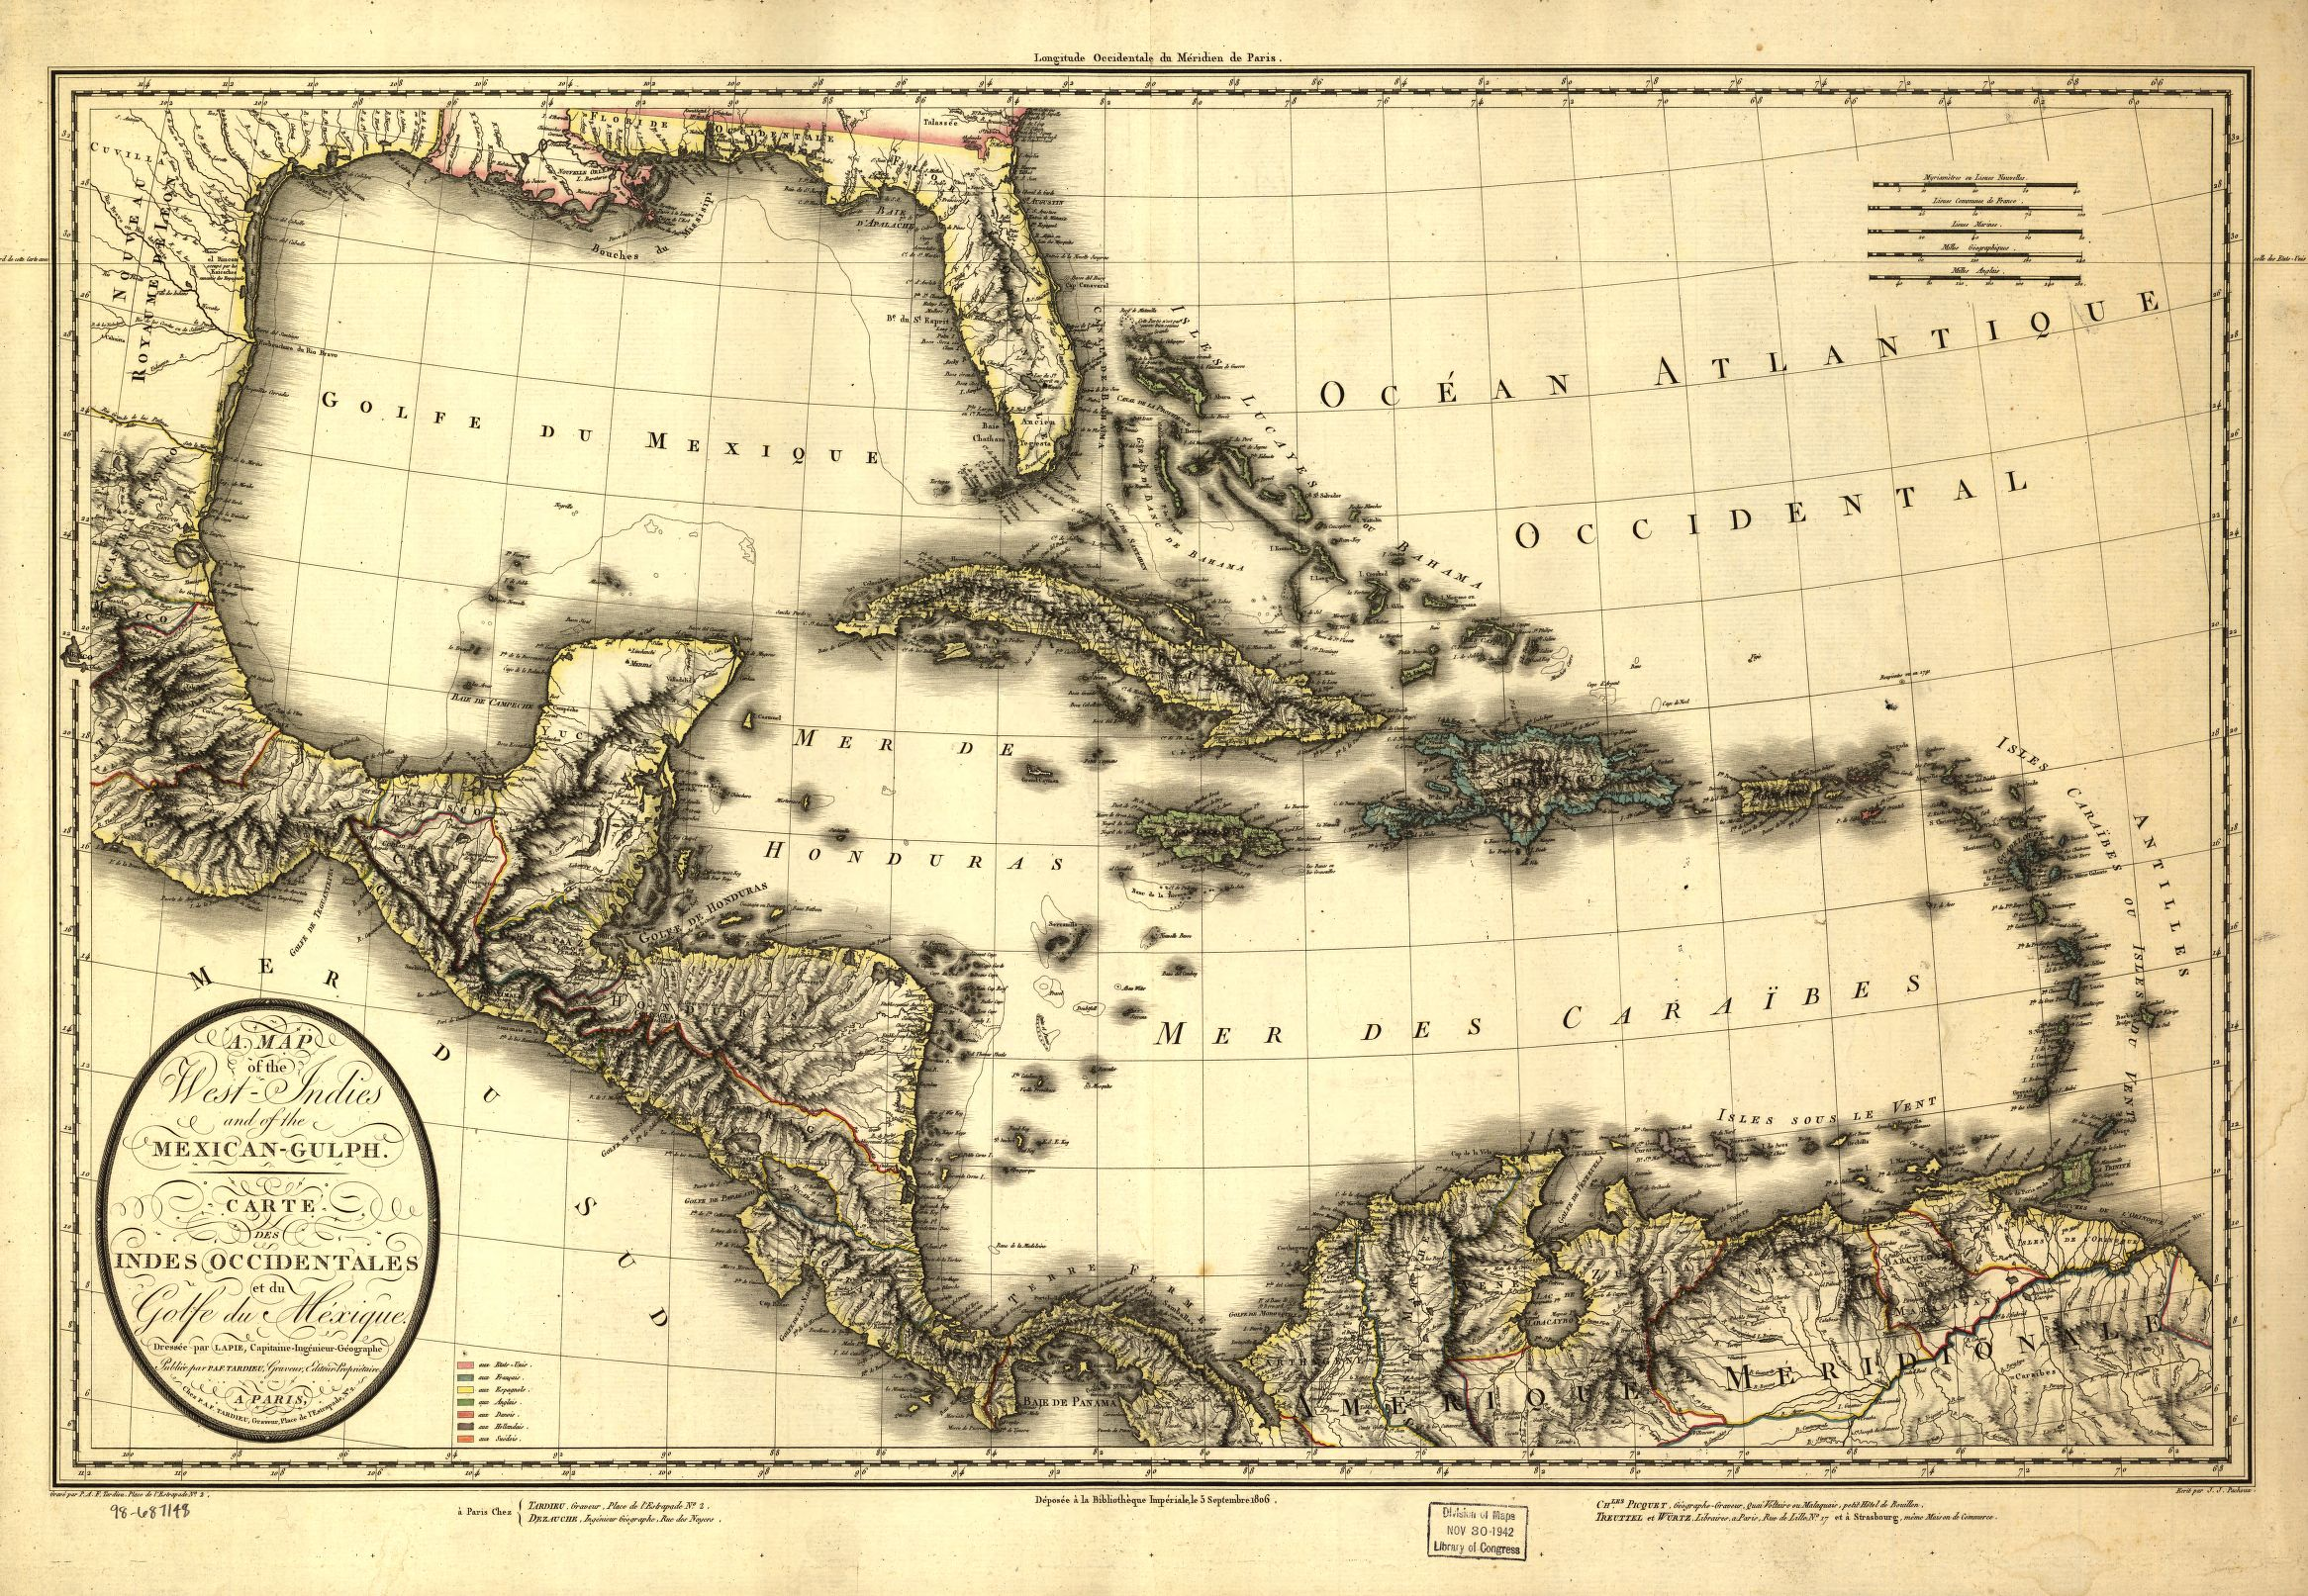 A map of the West Indies and the Mexican Gulf.